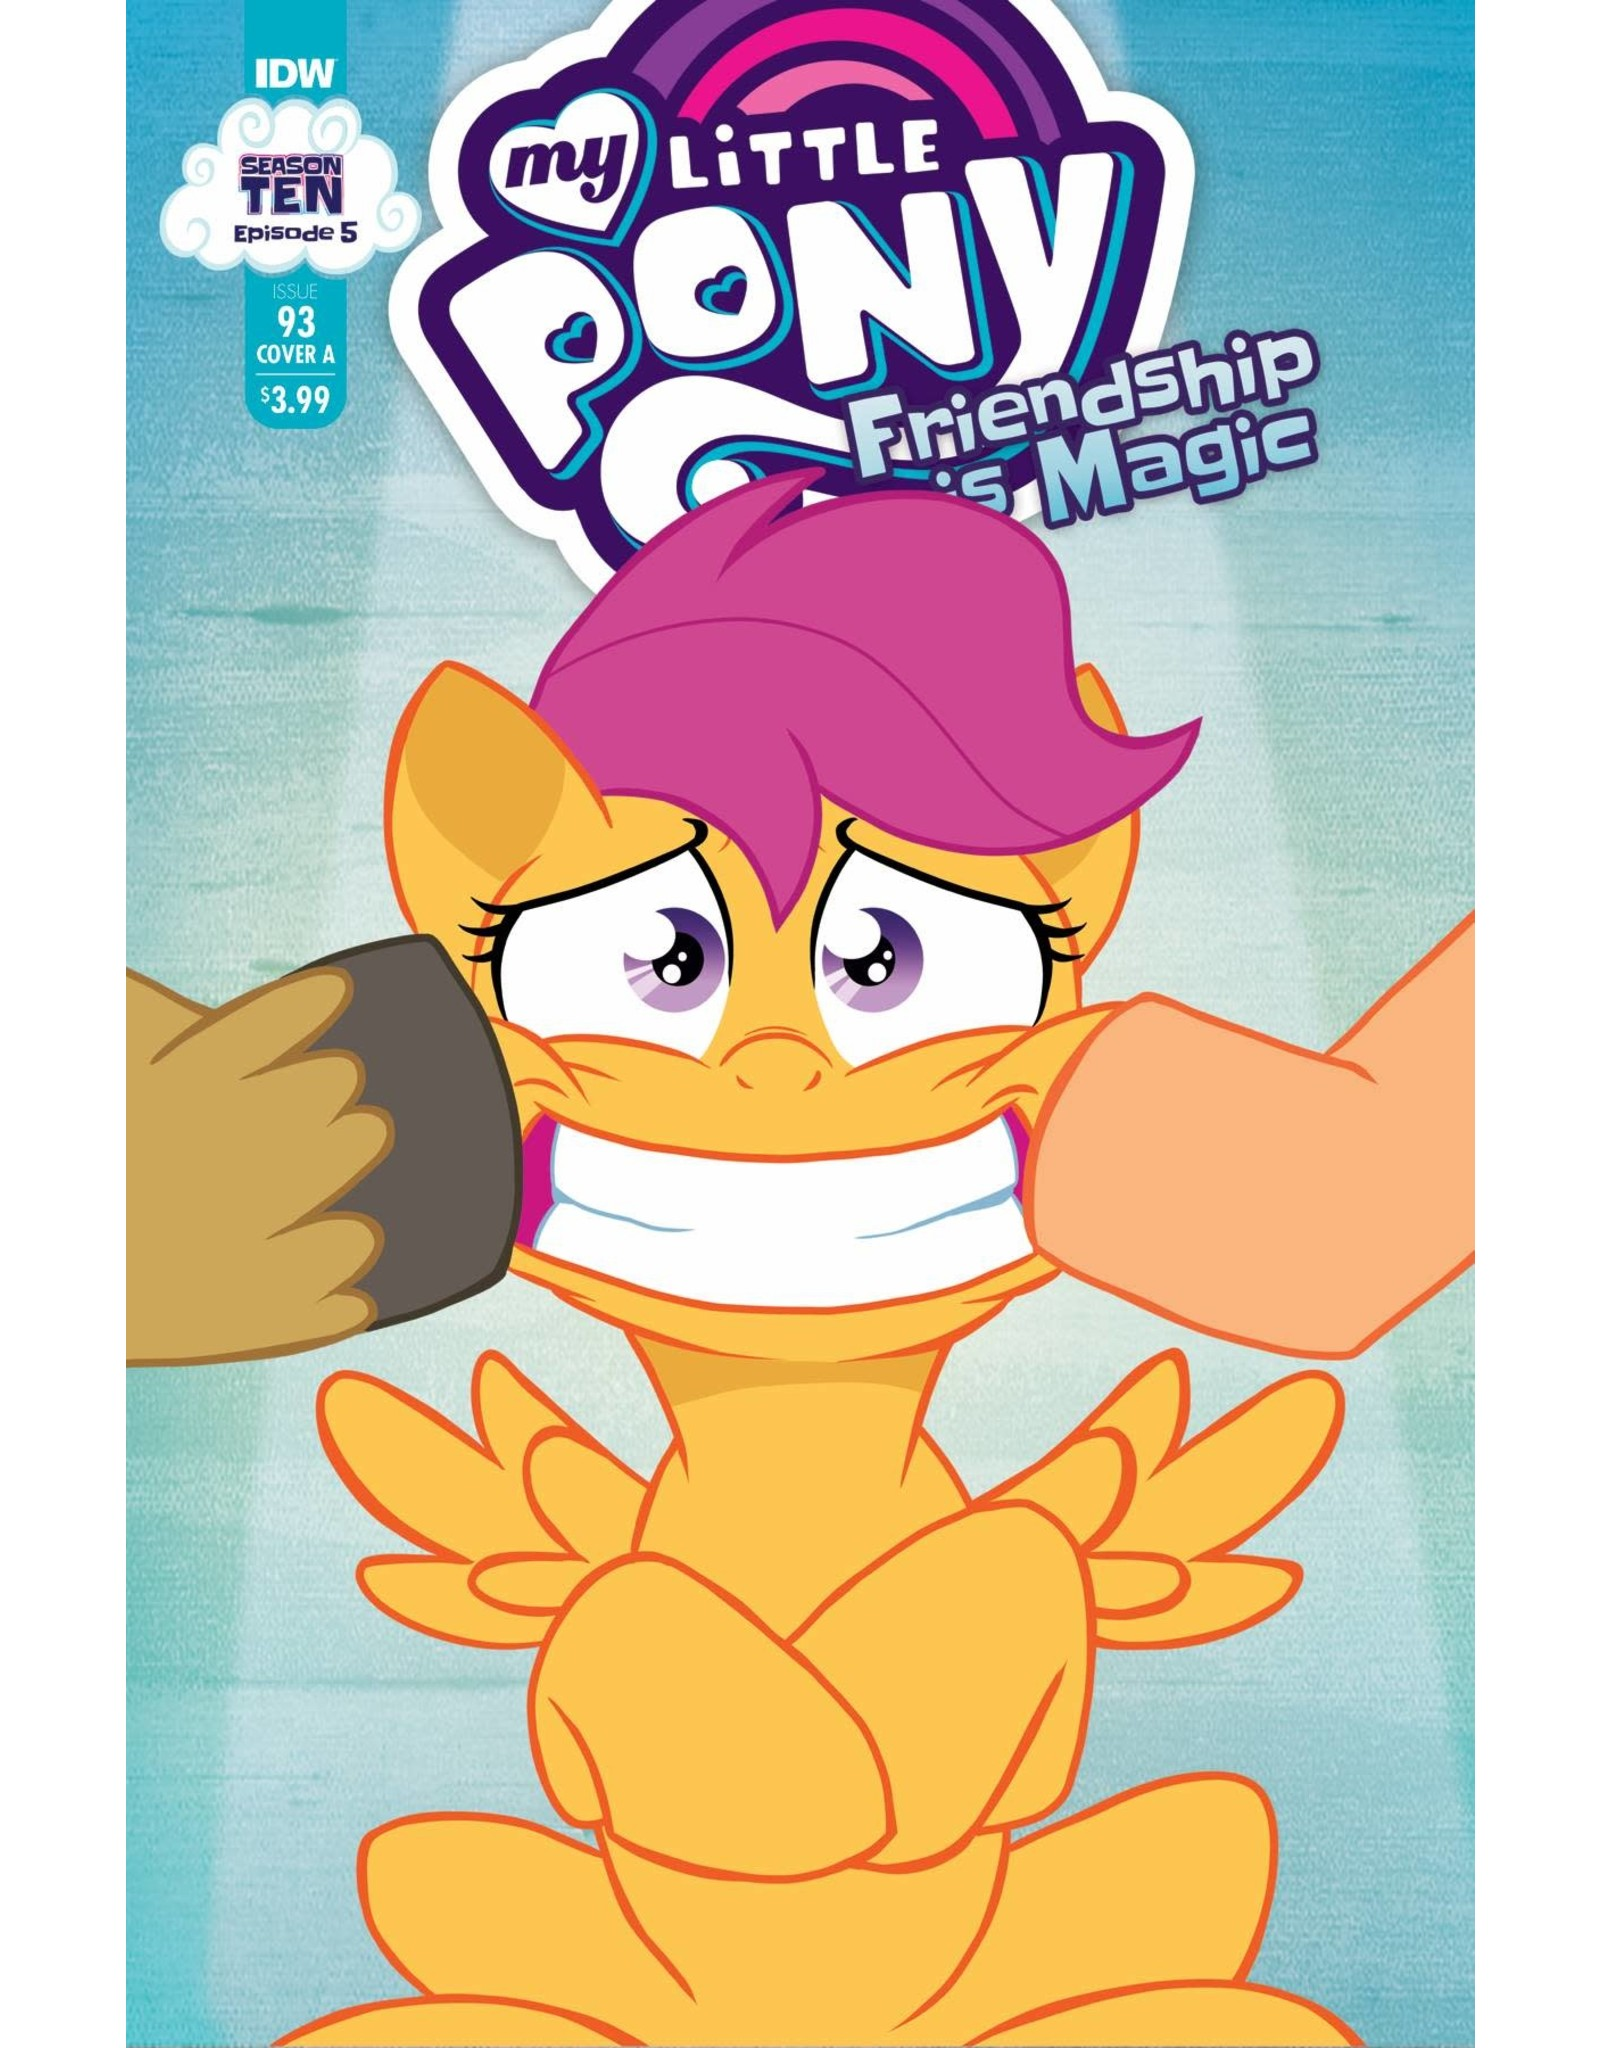 IDW PUBLISHING MY LITTLE PONY FRIENDSHIP IS MAGIC #93 CVR A  FORSTNER